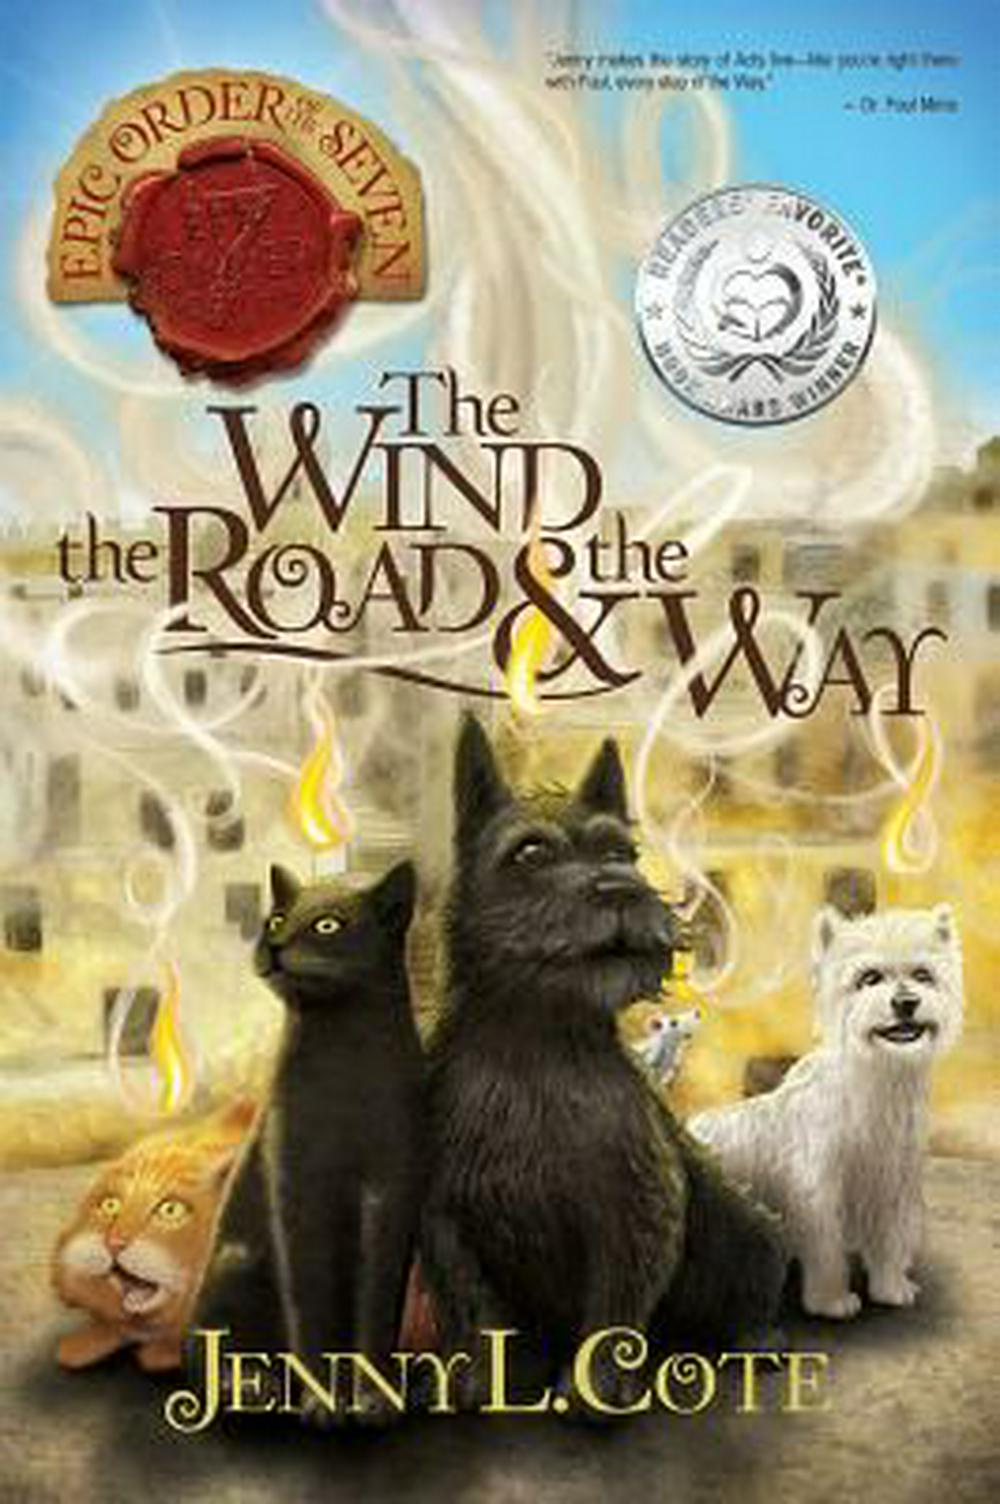 The Wind, the Road and the Way by Jenny L Cote, ISBN: 9780899577937